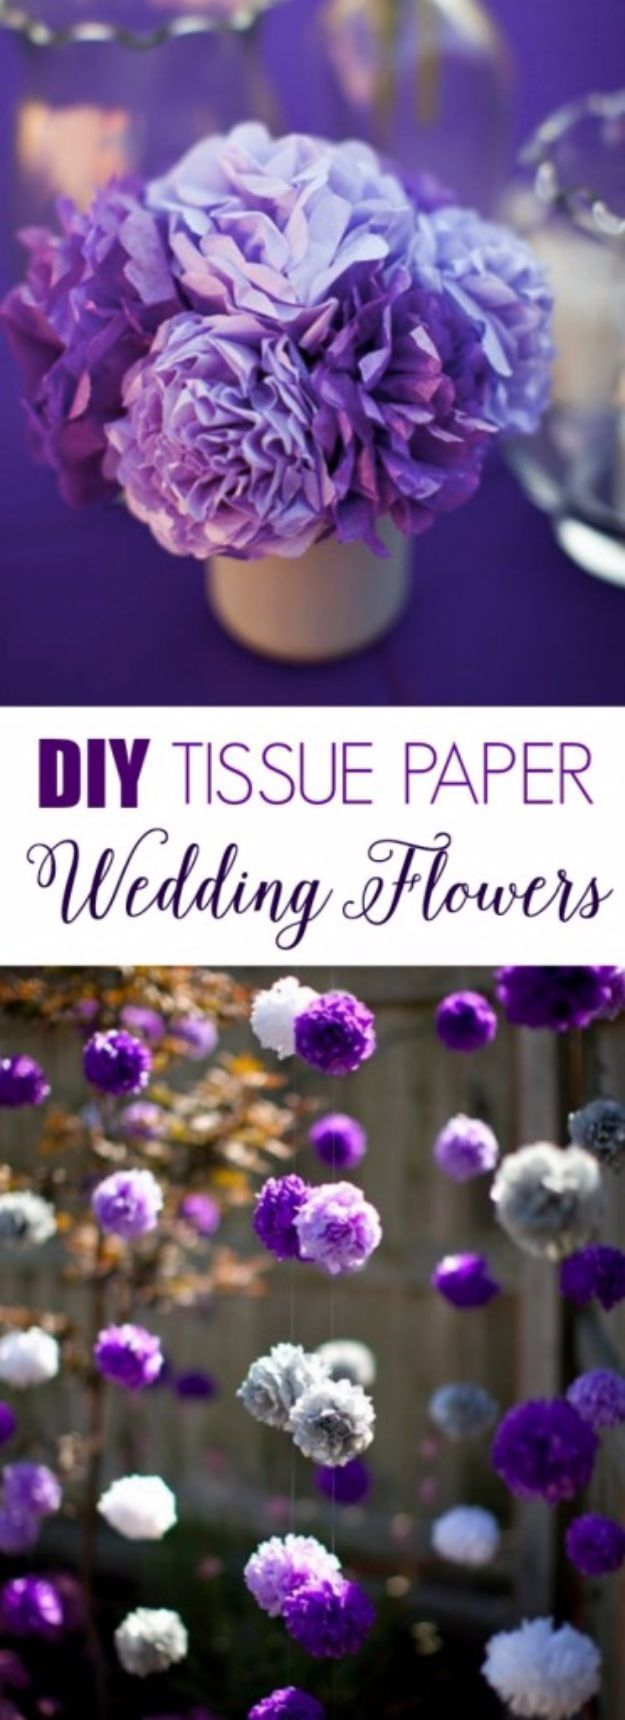 Paper wedding decoration ideas  DIY Wedding Decor  DIY Tissue Paper Flowers  Easy and Cheap